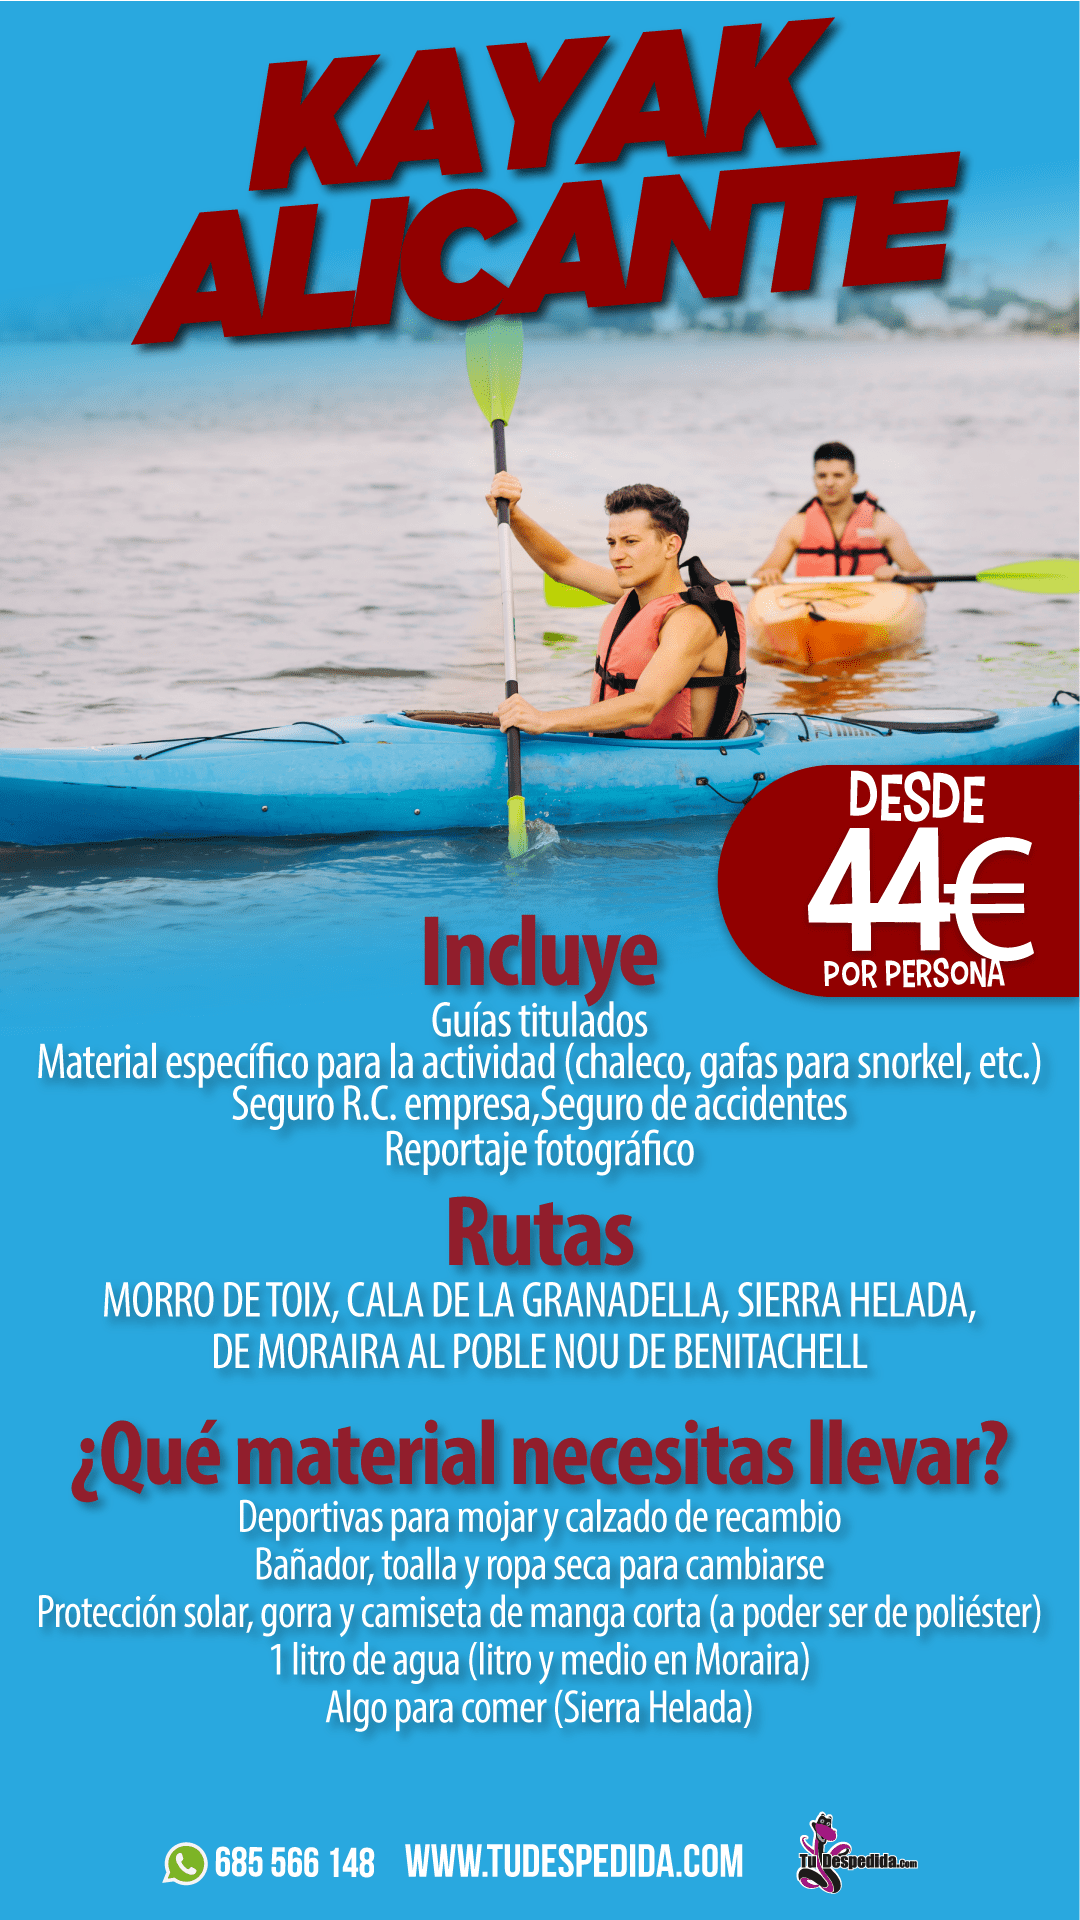 KAYAK ALICANTE